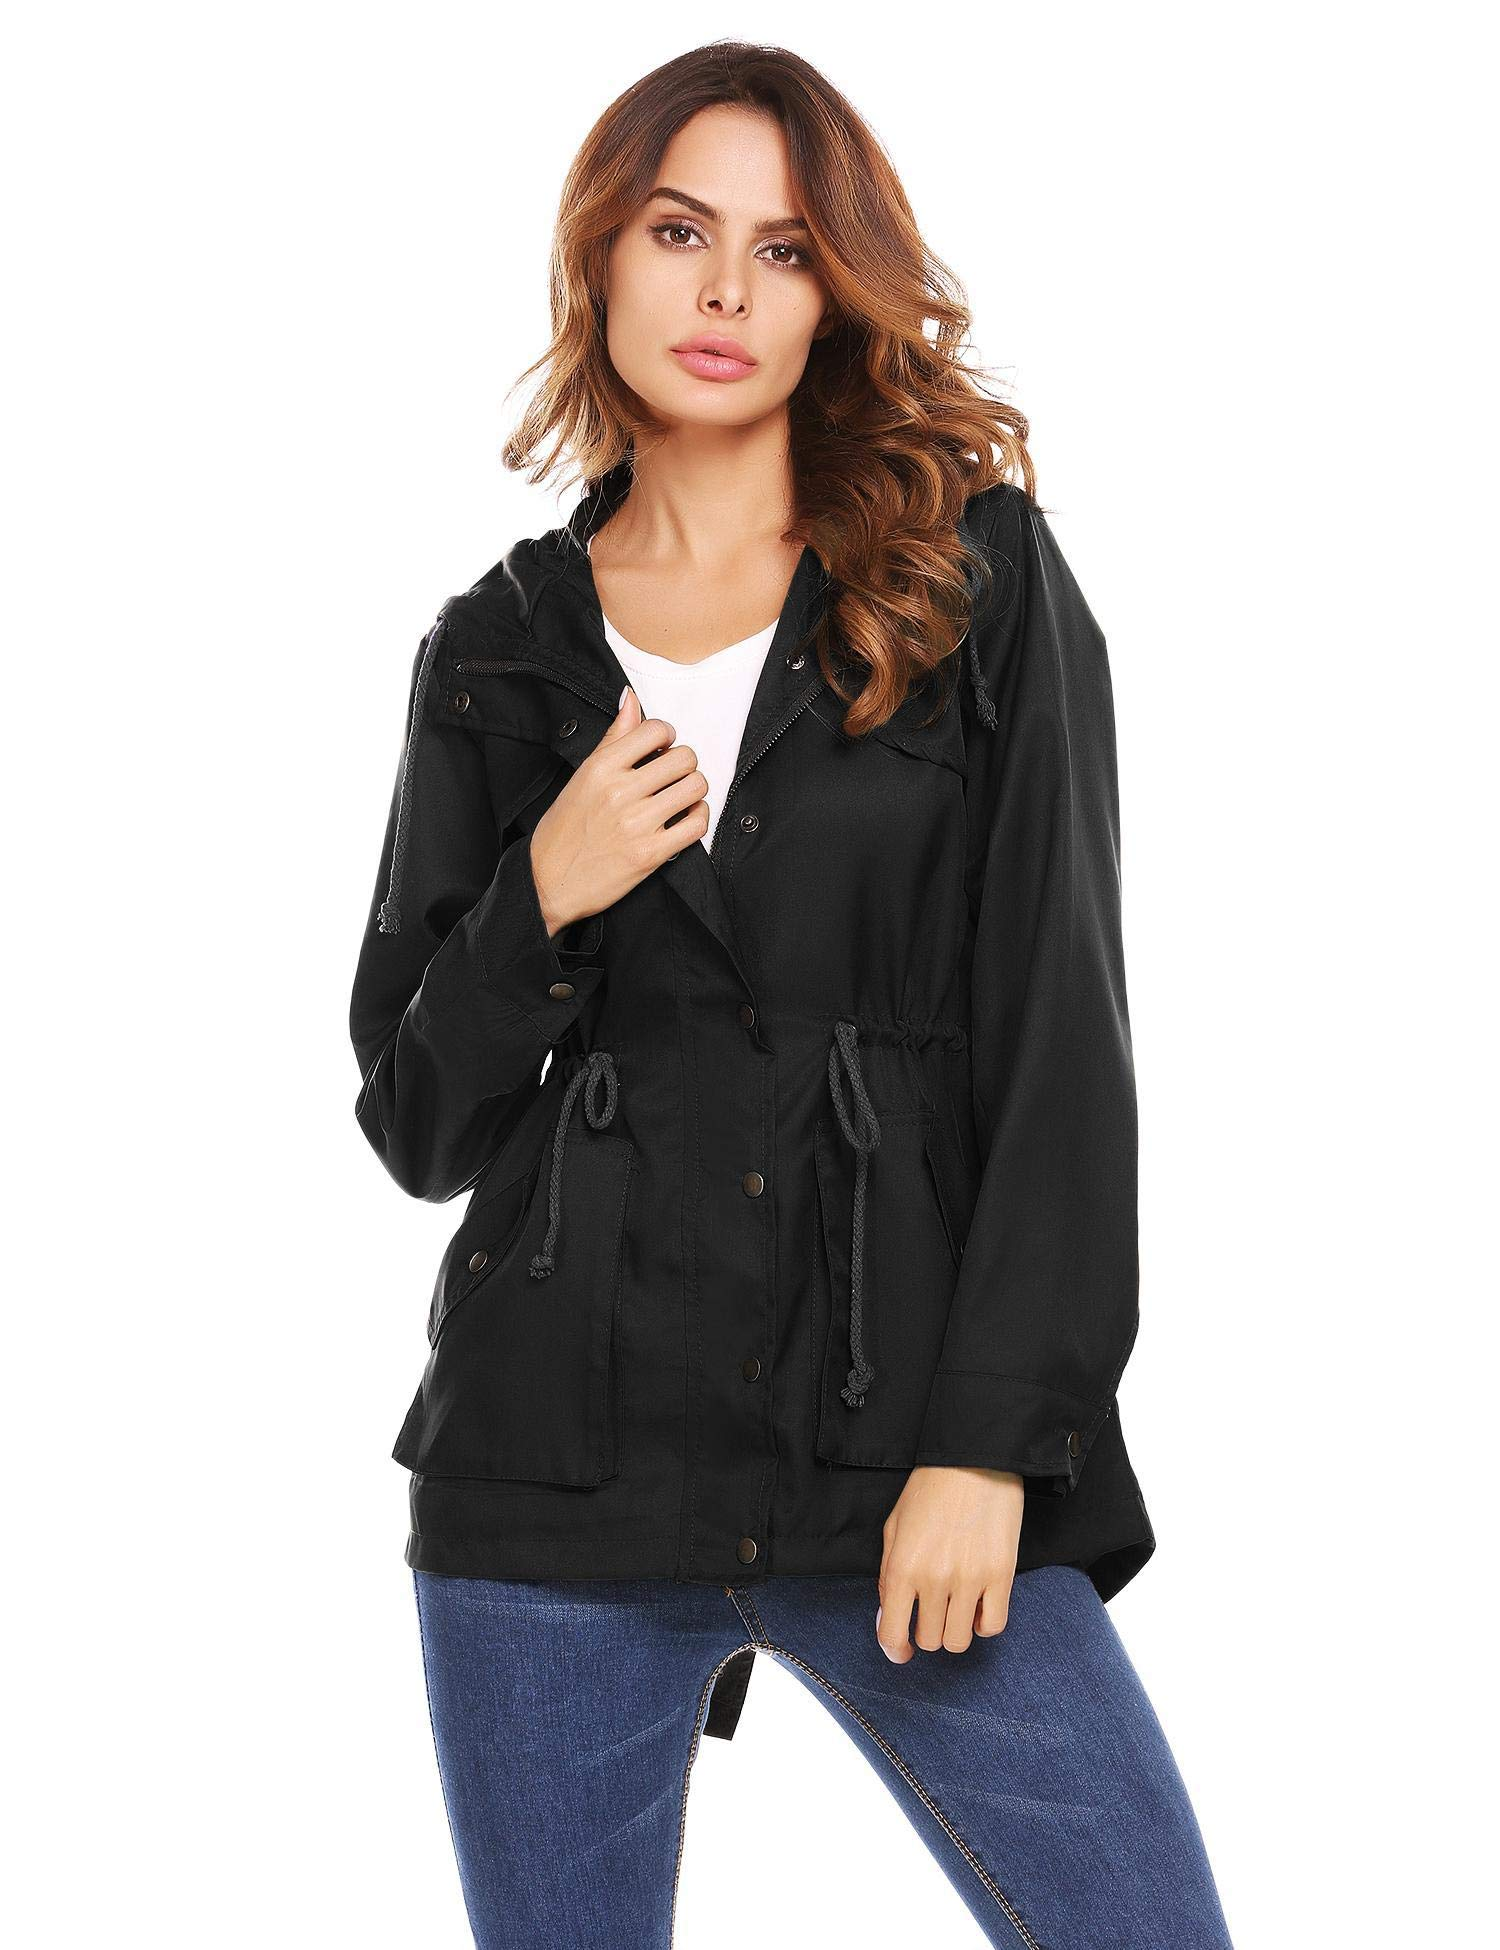 UNibelle Fall Anorak Street Fashion Hoodies Active Lightweight Zip Up Women Safari Jacket(Black,XXL)